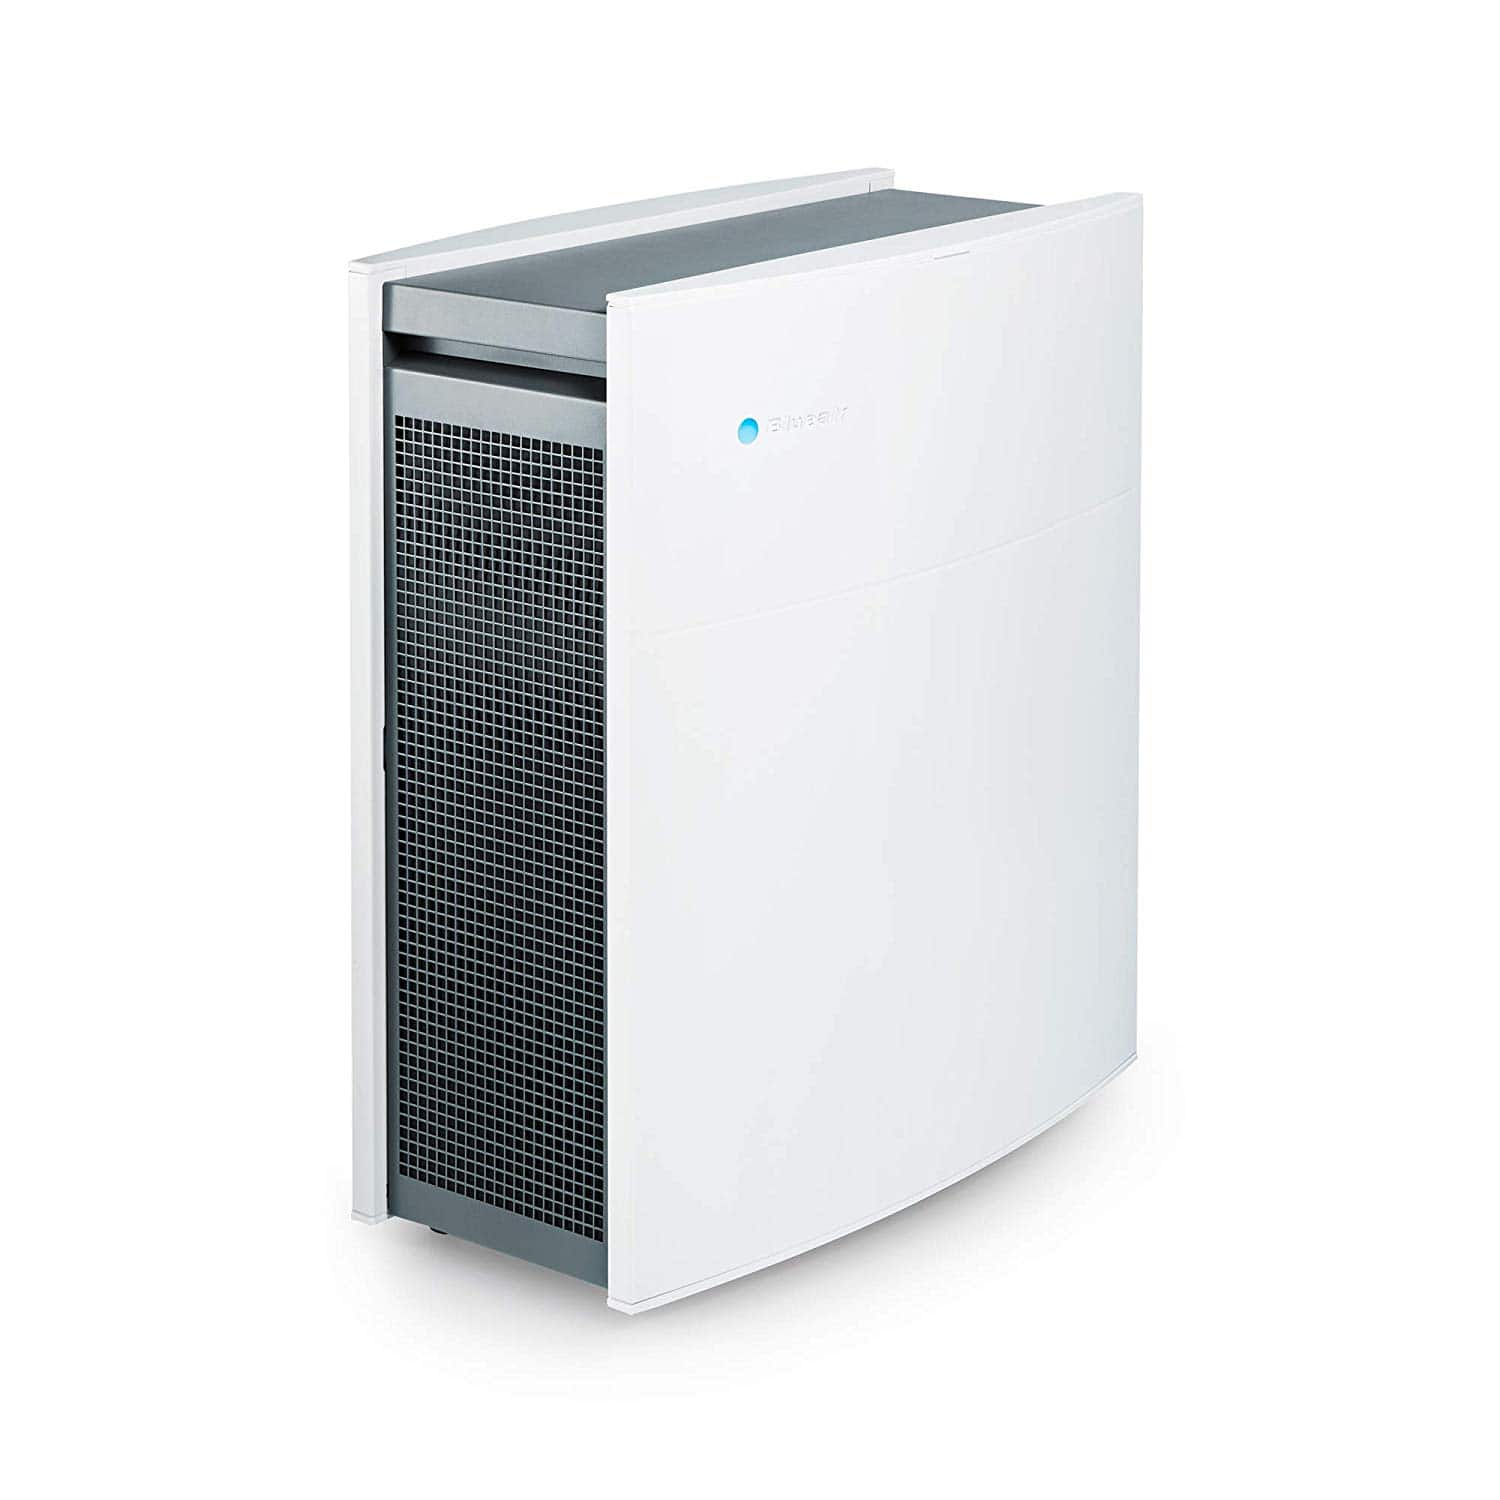 BlueAir Classic 480i HEPASilent Air Purifier $345, Blueair Classic 605 Air Purifier $415 + Free Shipping [DOTD 11/15/19]